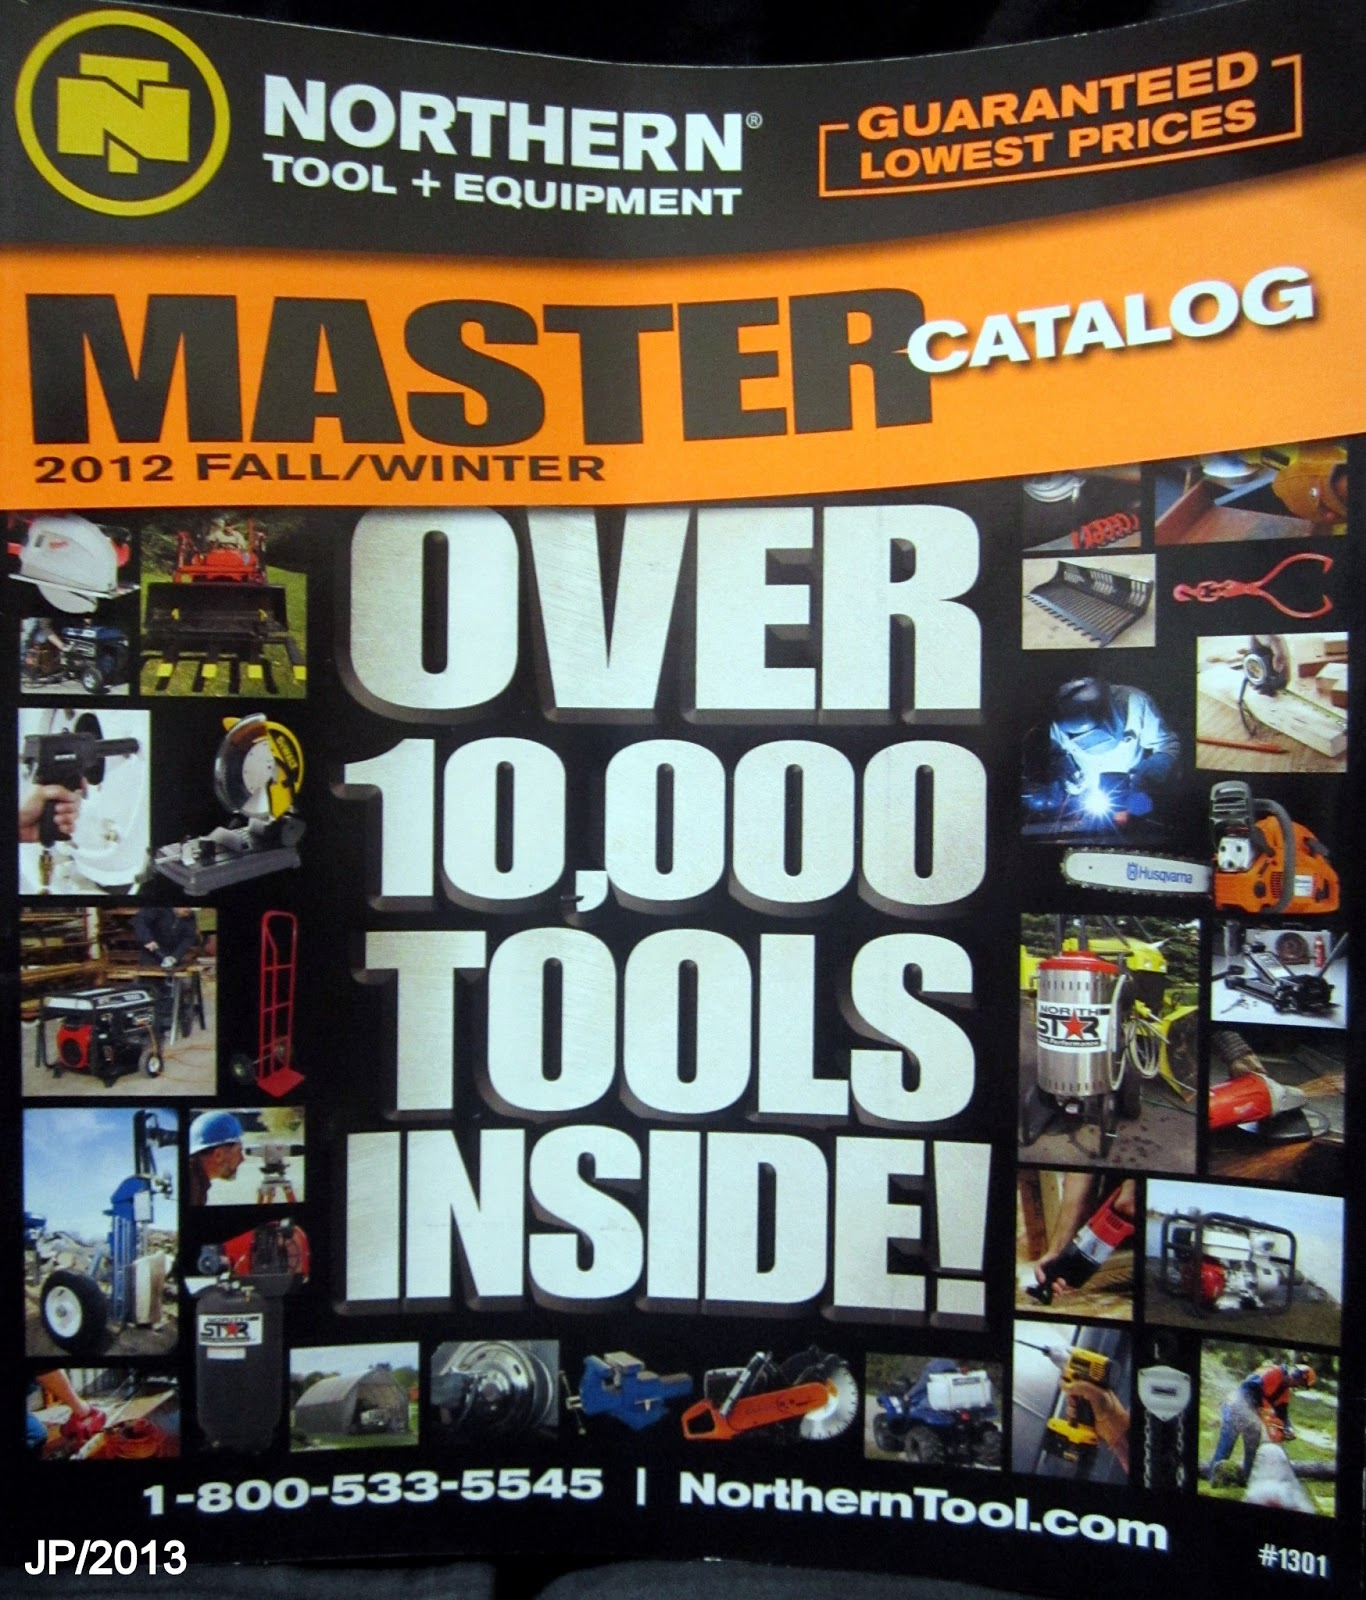 NORTHERN+TOOL+++Equipment+Catalog+++Northern+Tool+Store.JPG